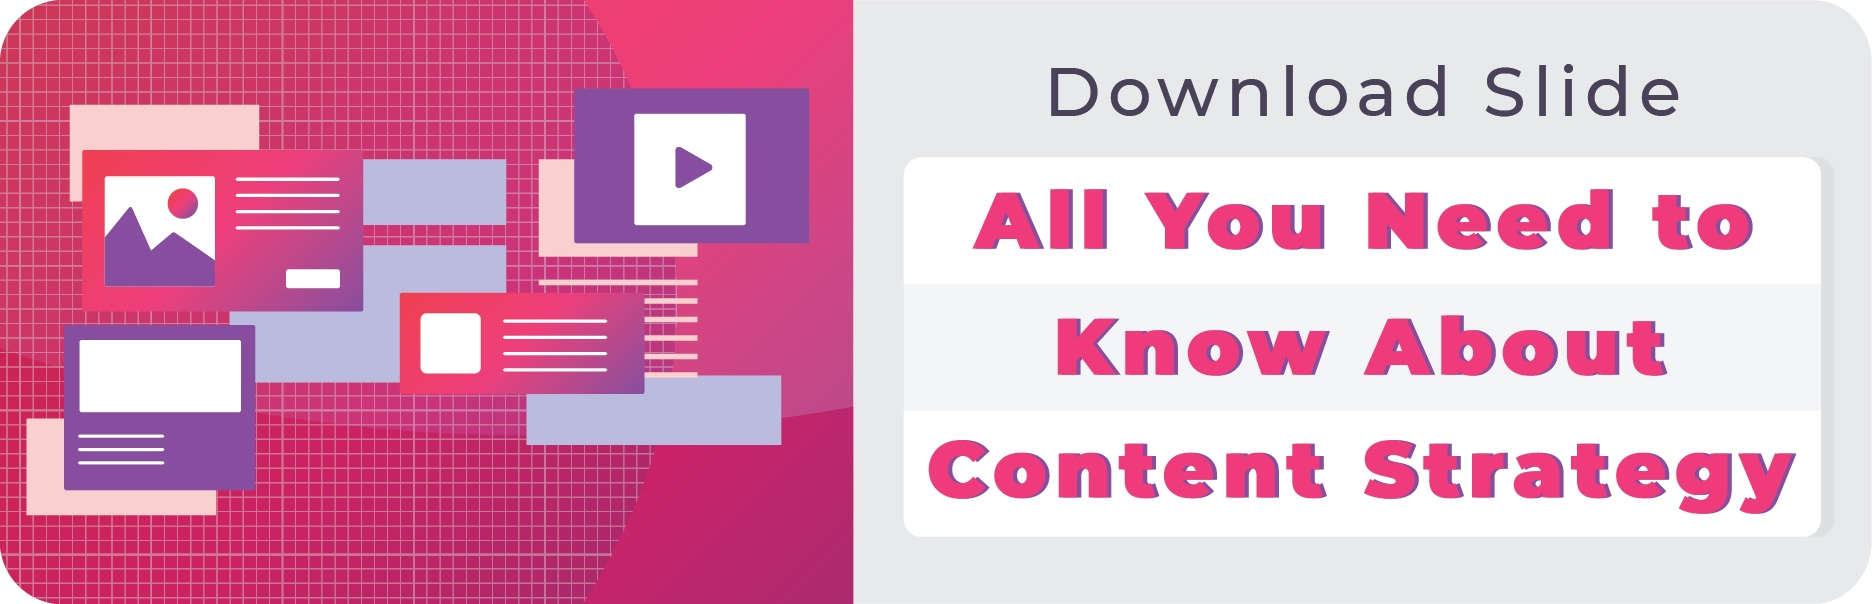 Download Slide:l All You Need to Know about Content Strategy